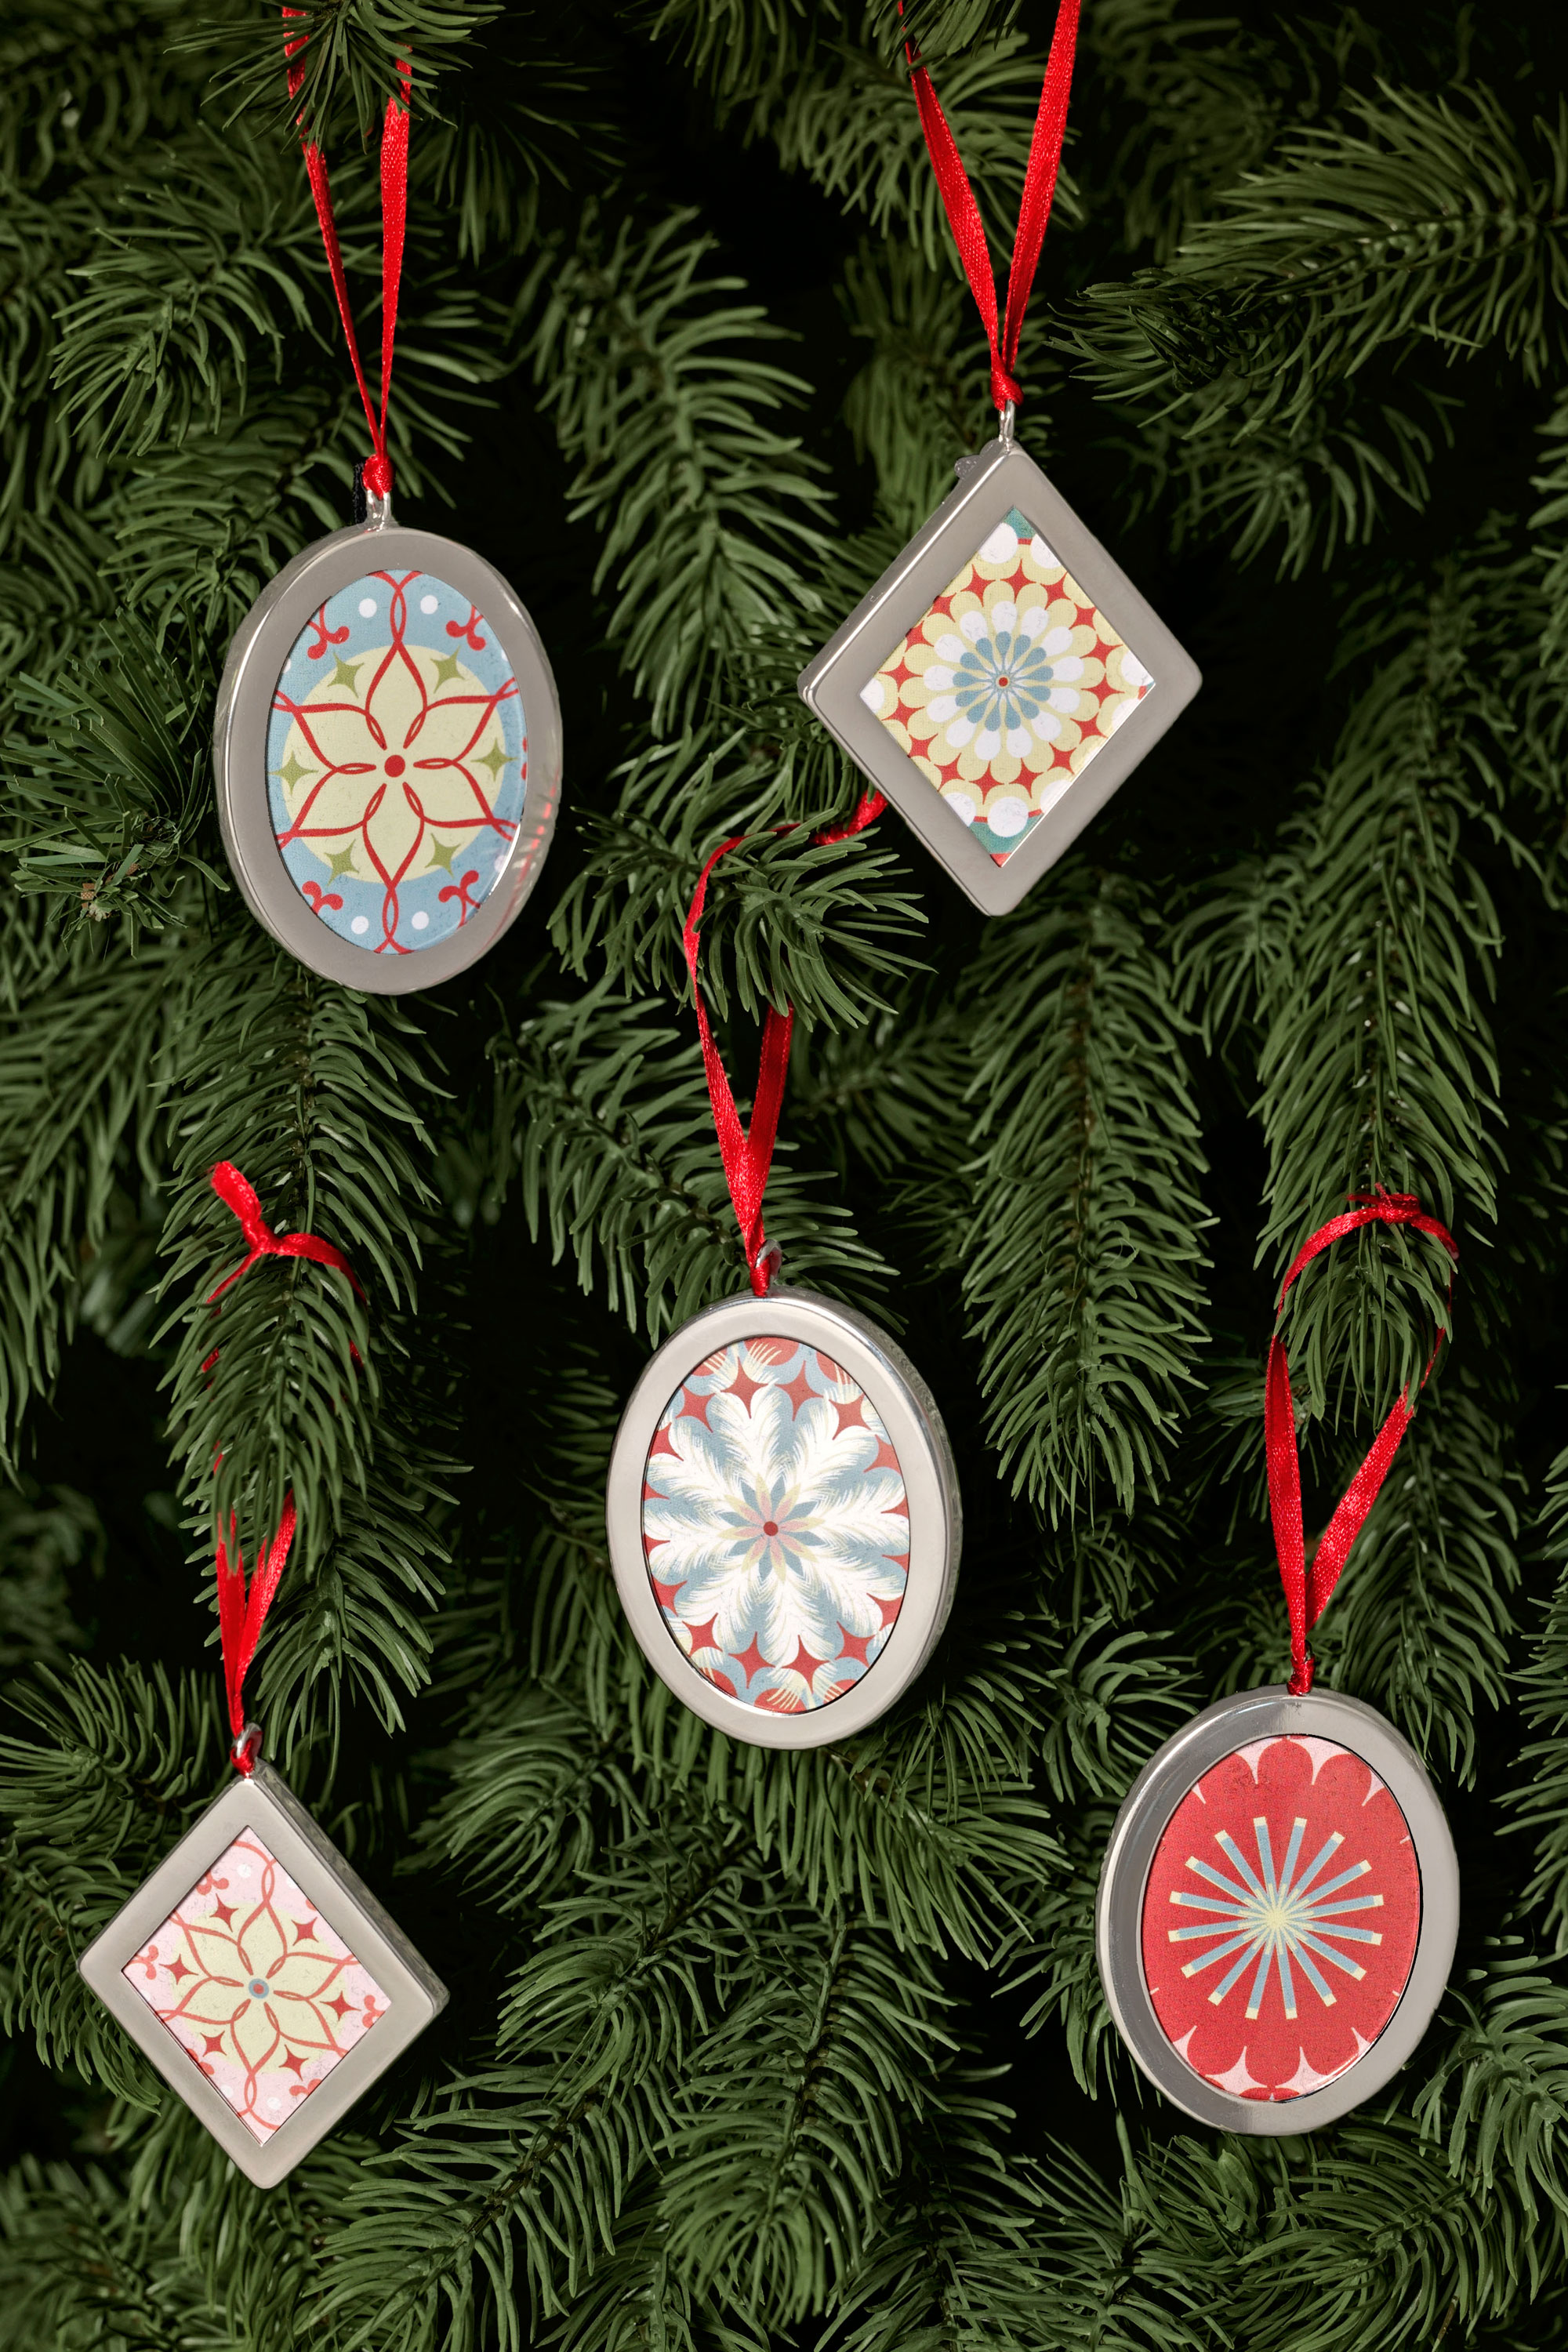 35 DIY Homemade Christmas Decorations - Christmas Decor You Can Make